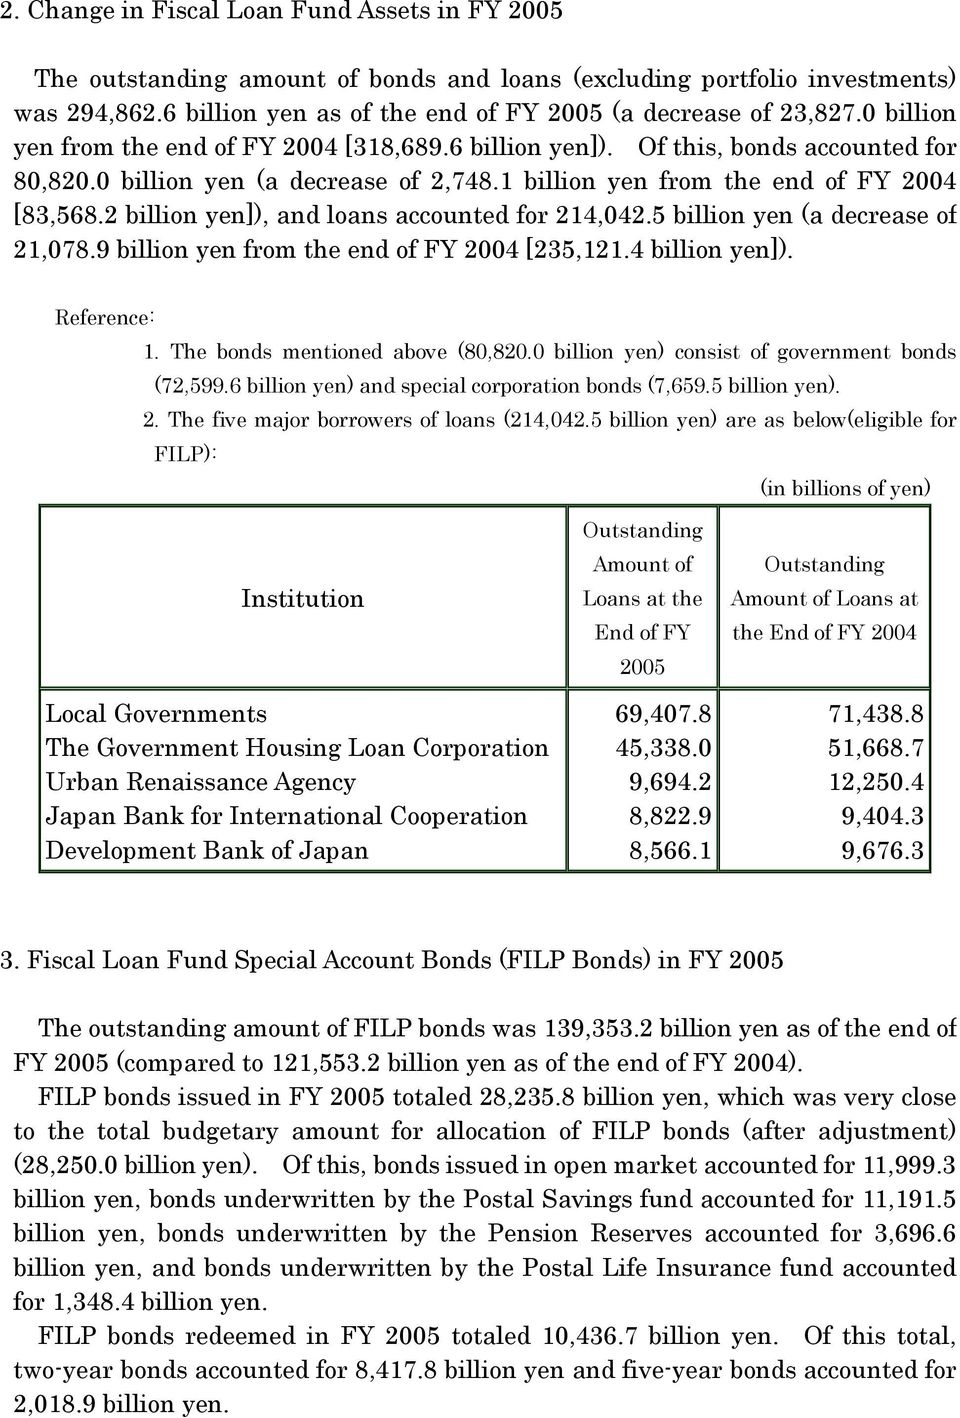 2 billion yen]), and loans accounted for 214,042.5 billion yen (a decrease of 21,078.9 billion yen from the end of FY 2004 [235,121.4 billion yen]). Reference: 1. The mentioned above (80,820.